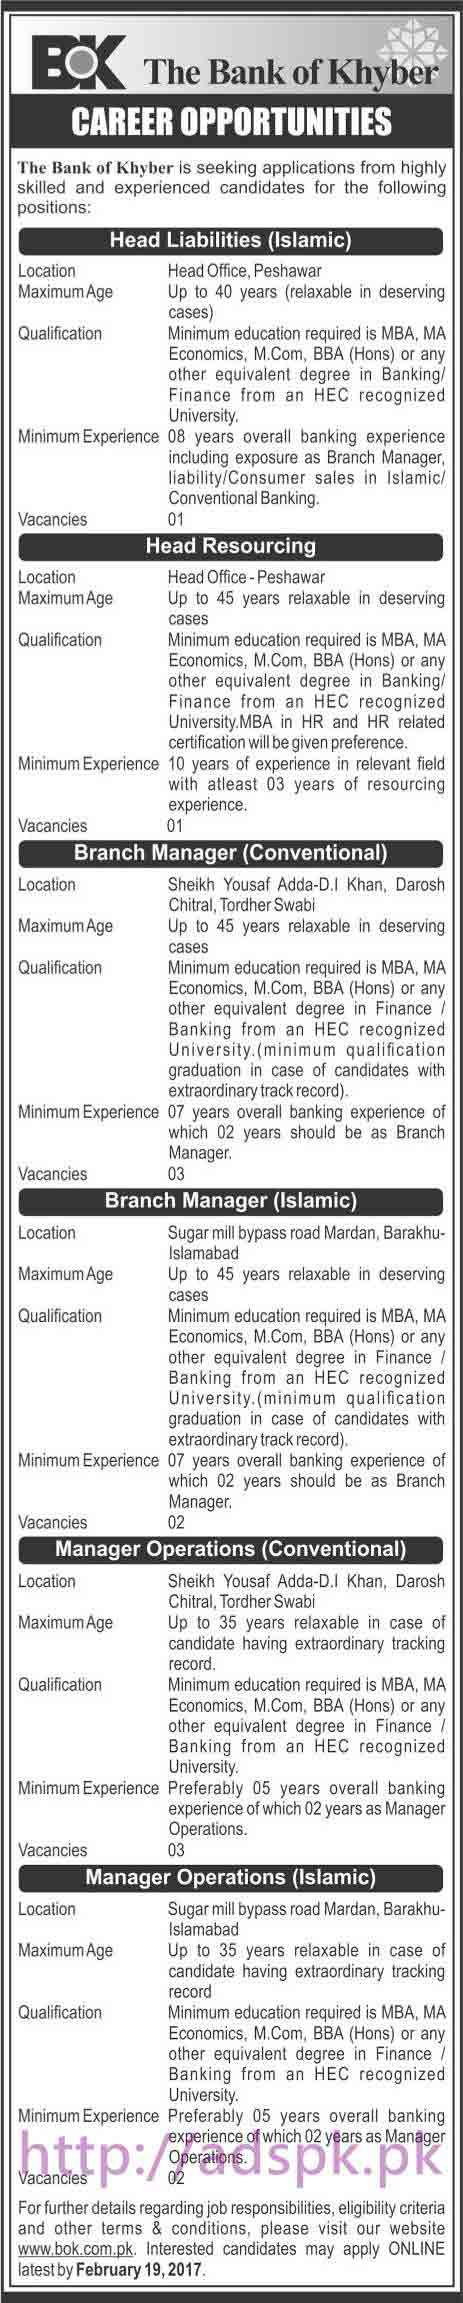 New Career Jobs BOK Bank of Khyber Jobs for Head liabilities (Islamic) Head Resourcing Branch Manager (Conventional) Managers Application Deadline 19-02-2017 Apply Online Now